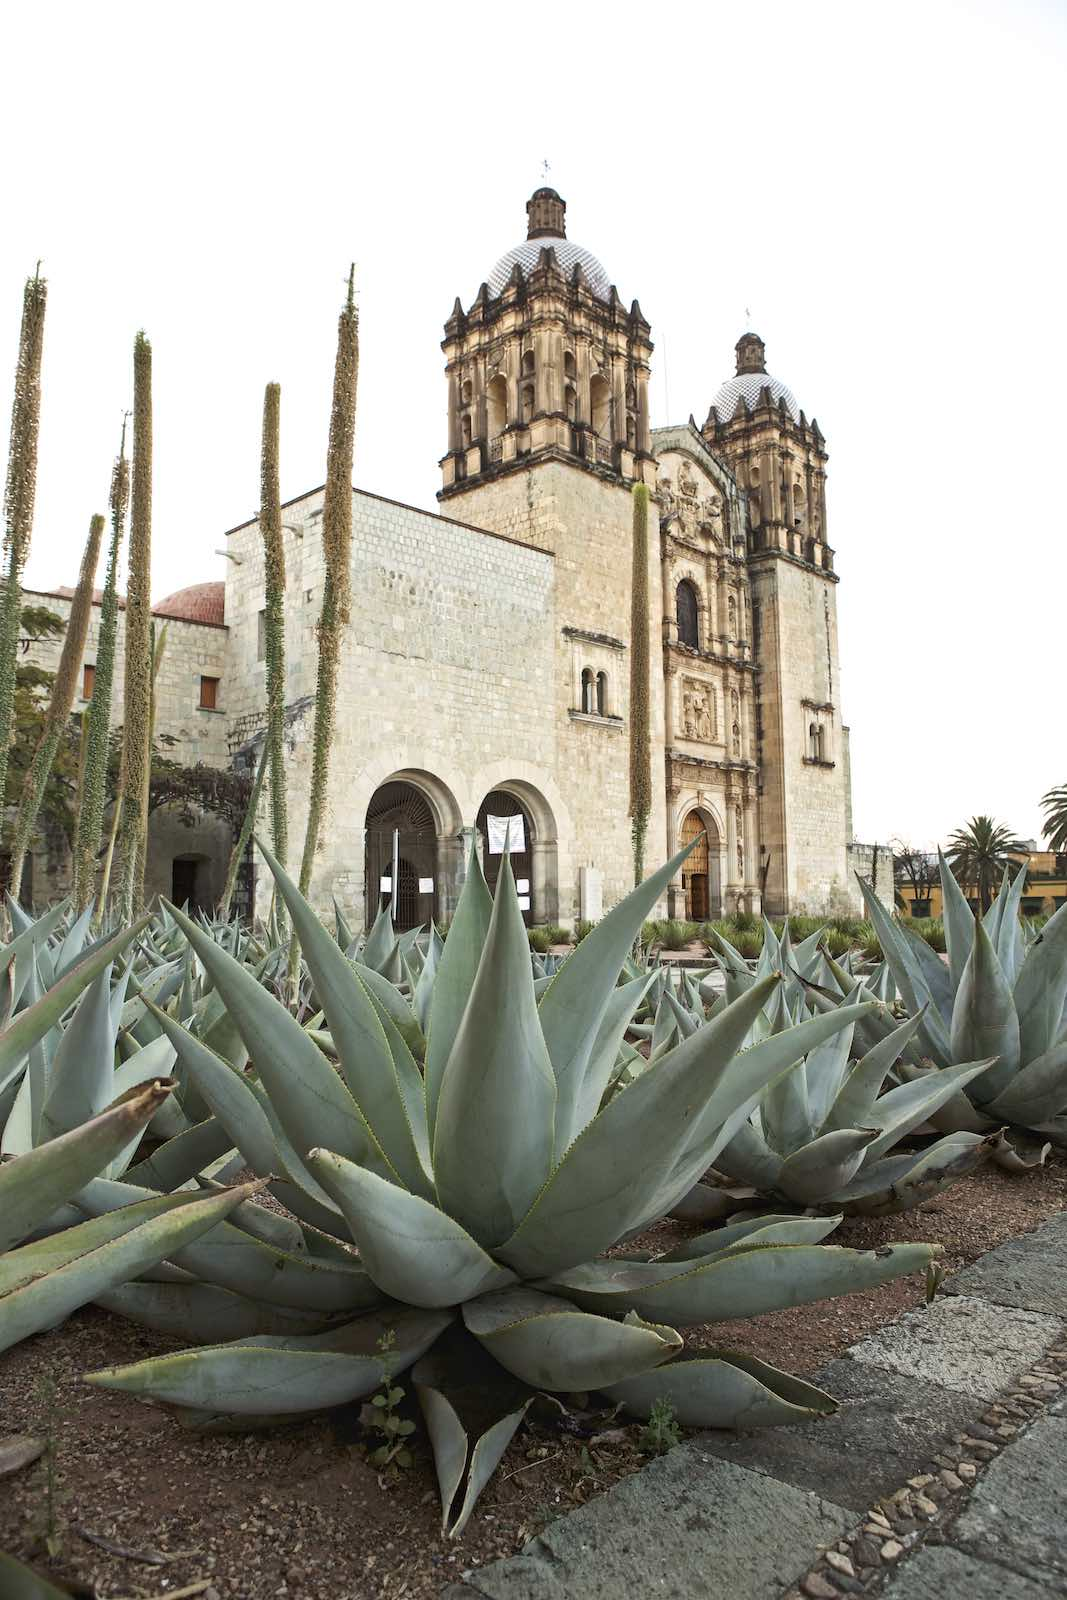 Jody Horton Photography - Large agaves and historic buildings.